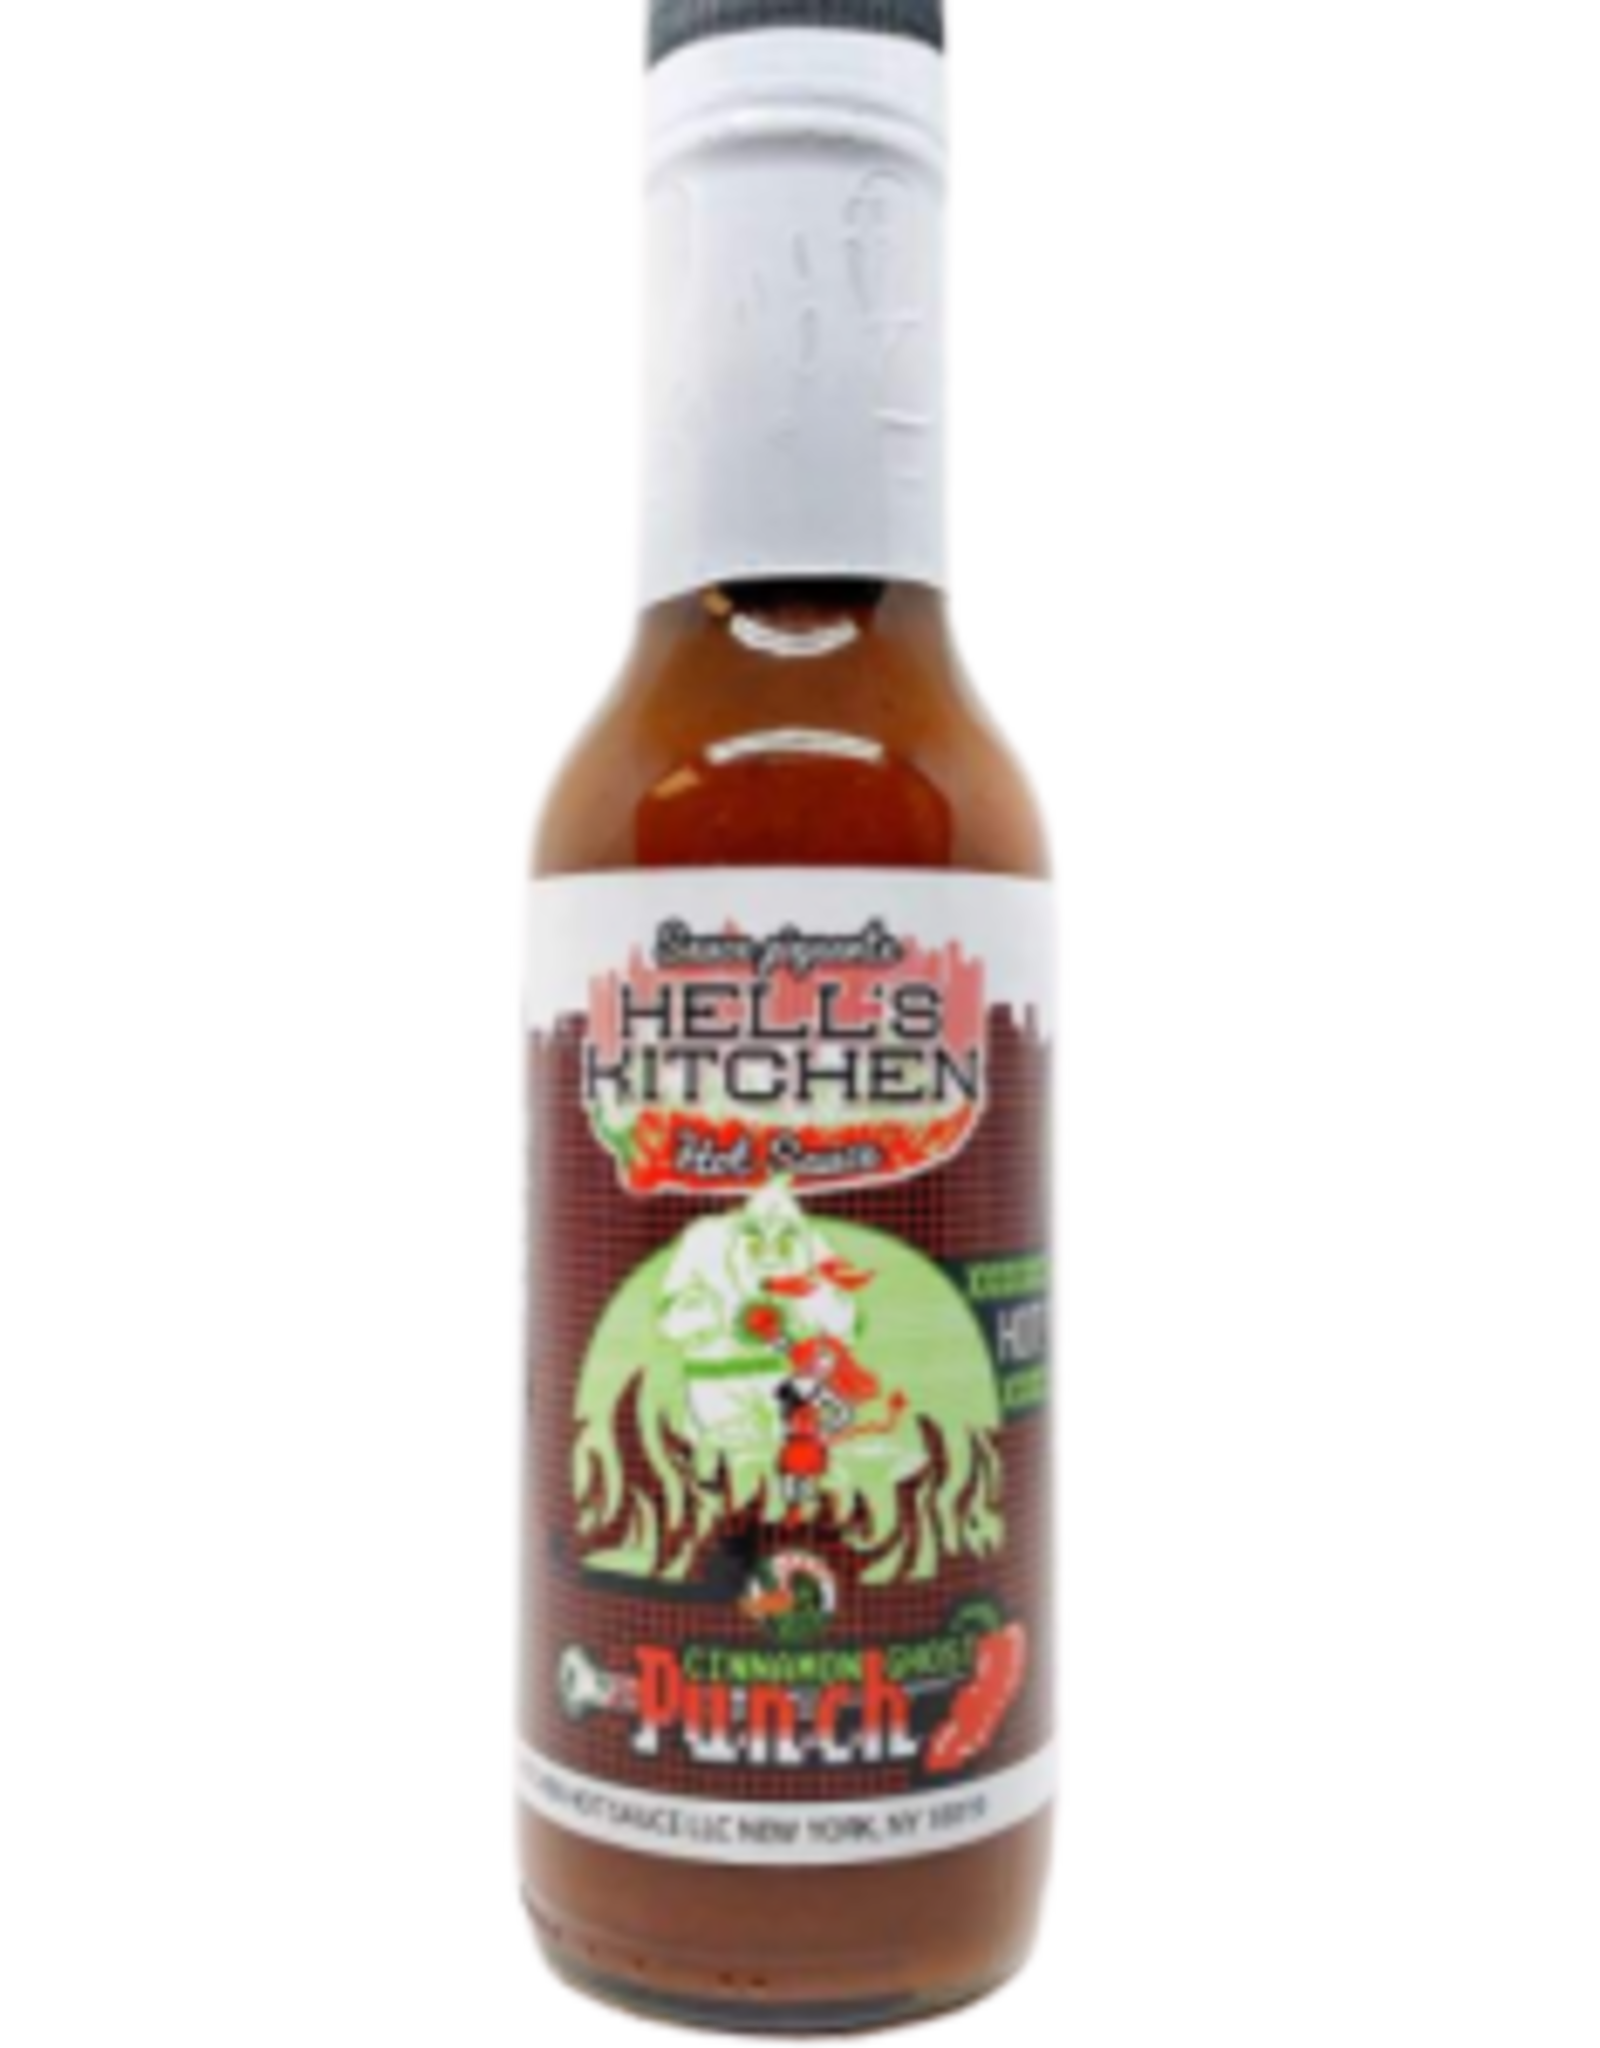 Hell's Kitchen Cinnamon Ghost Punch